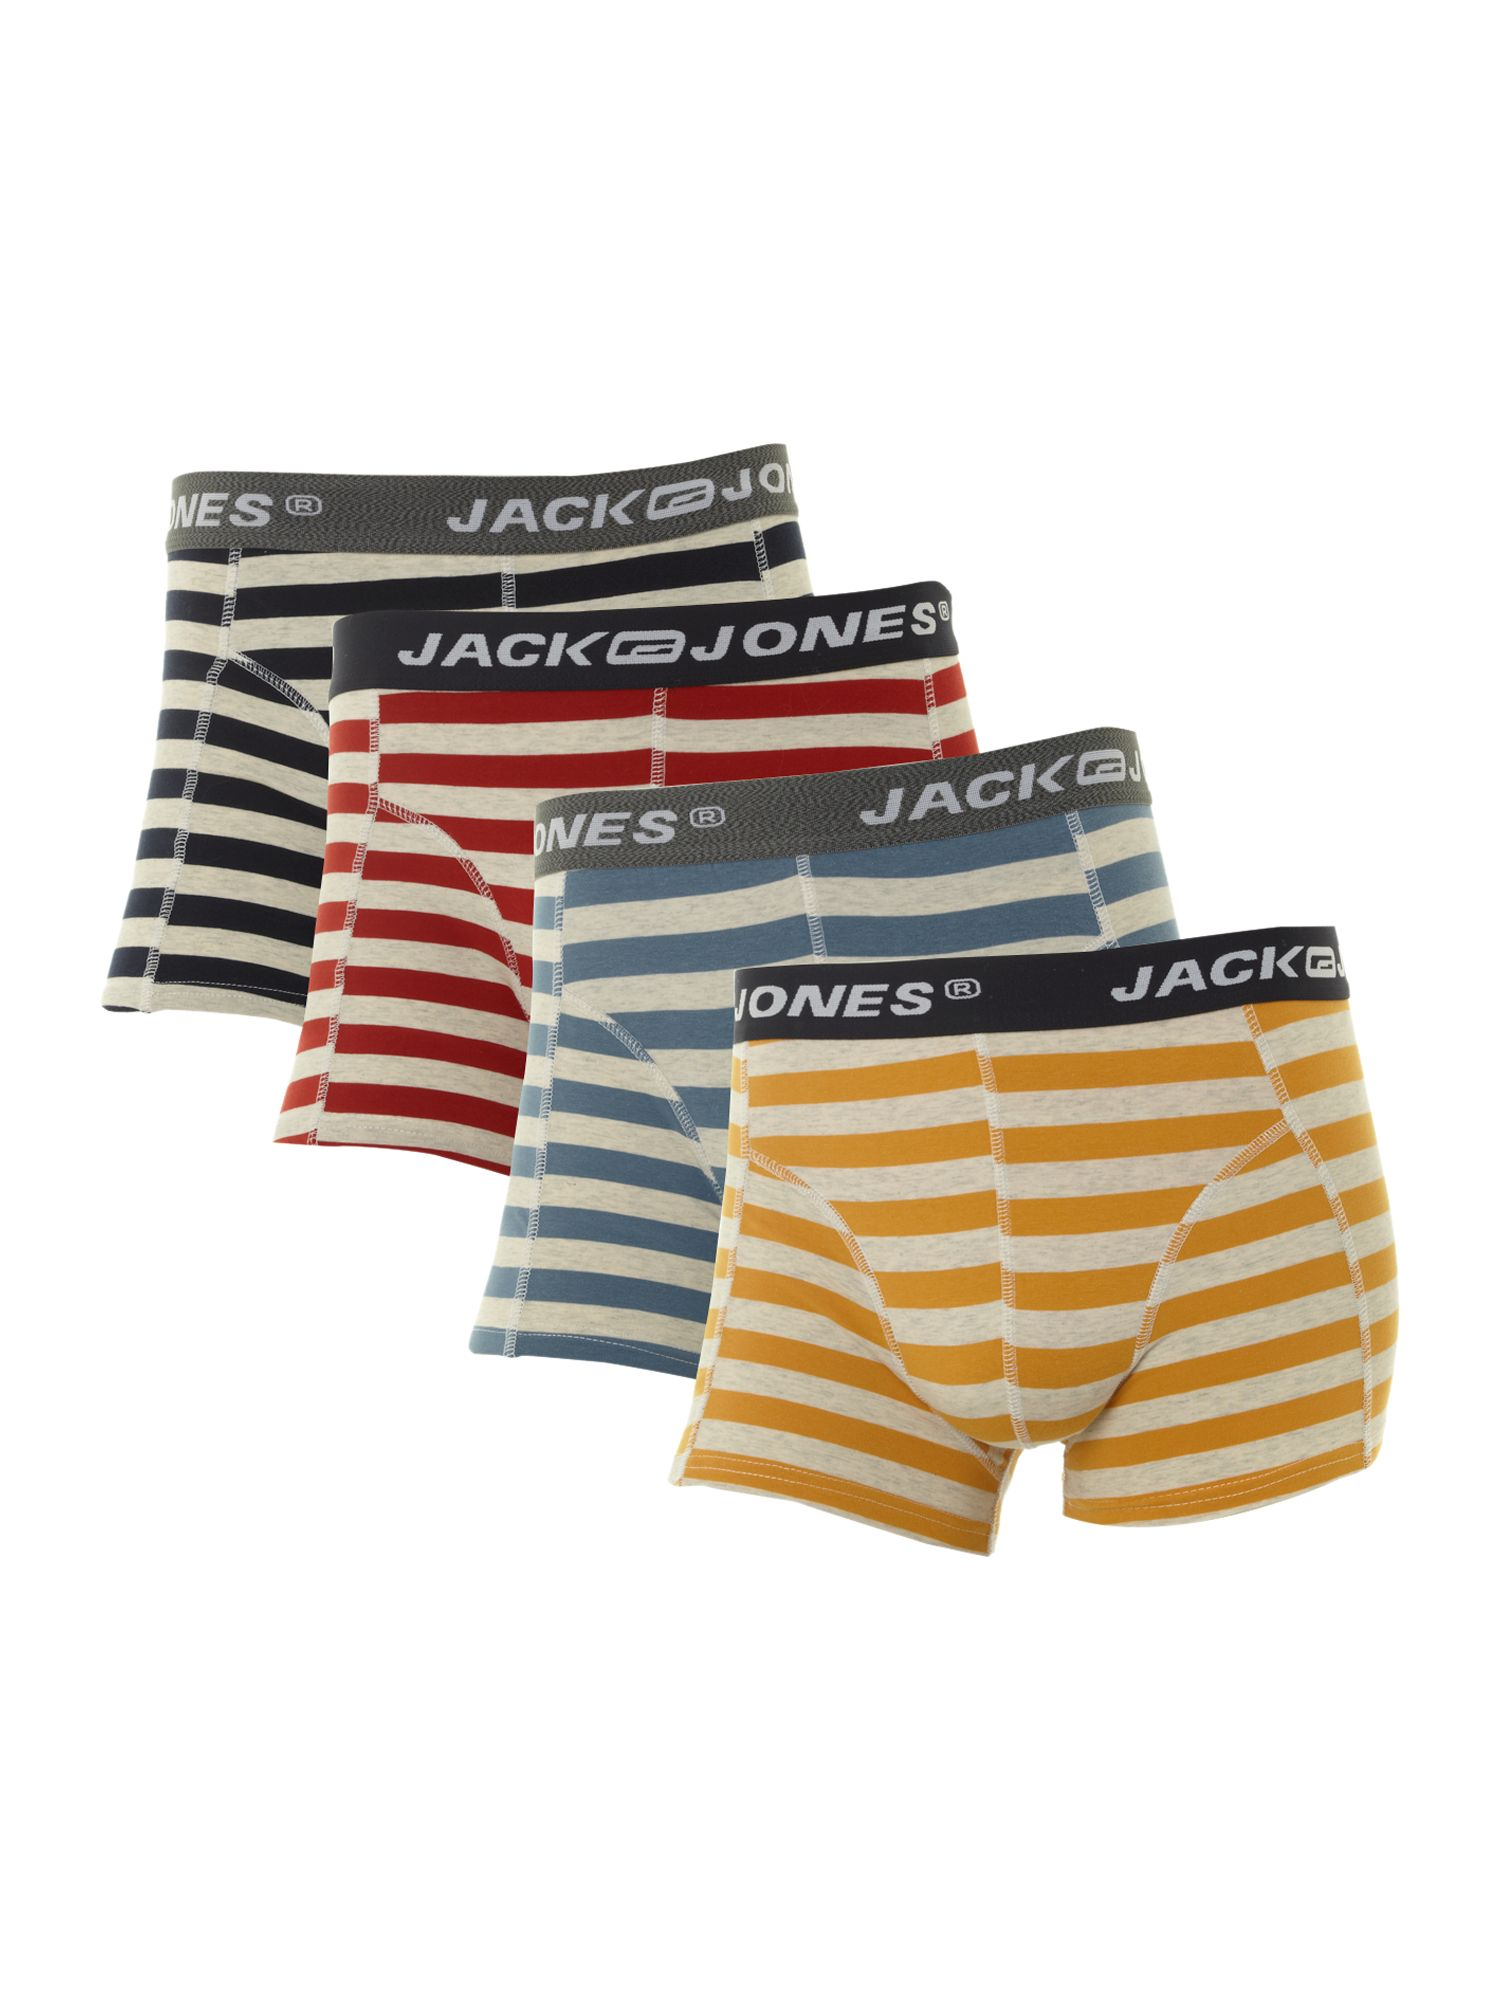 4pk Adrema stripe trunks